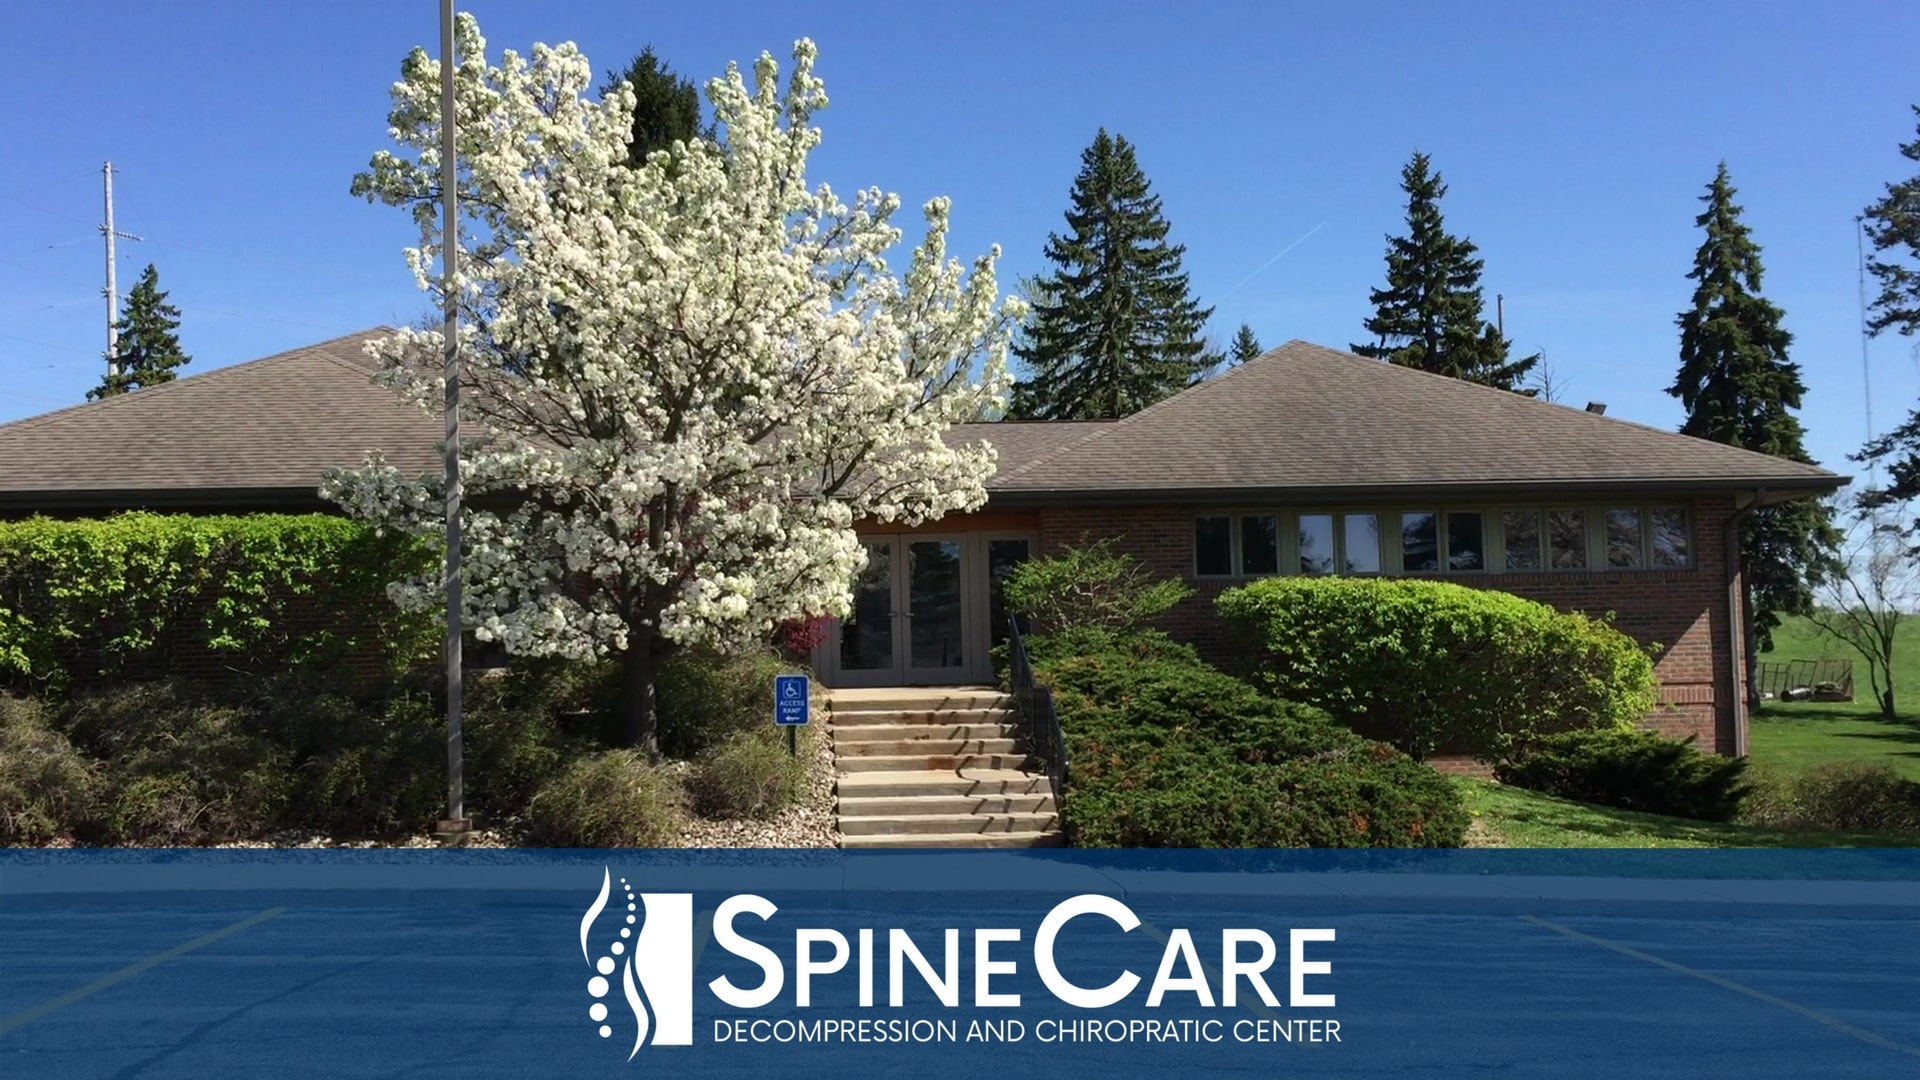 SpineCare Chiropractic Office in St. Joseph, MI